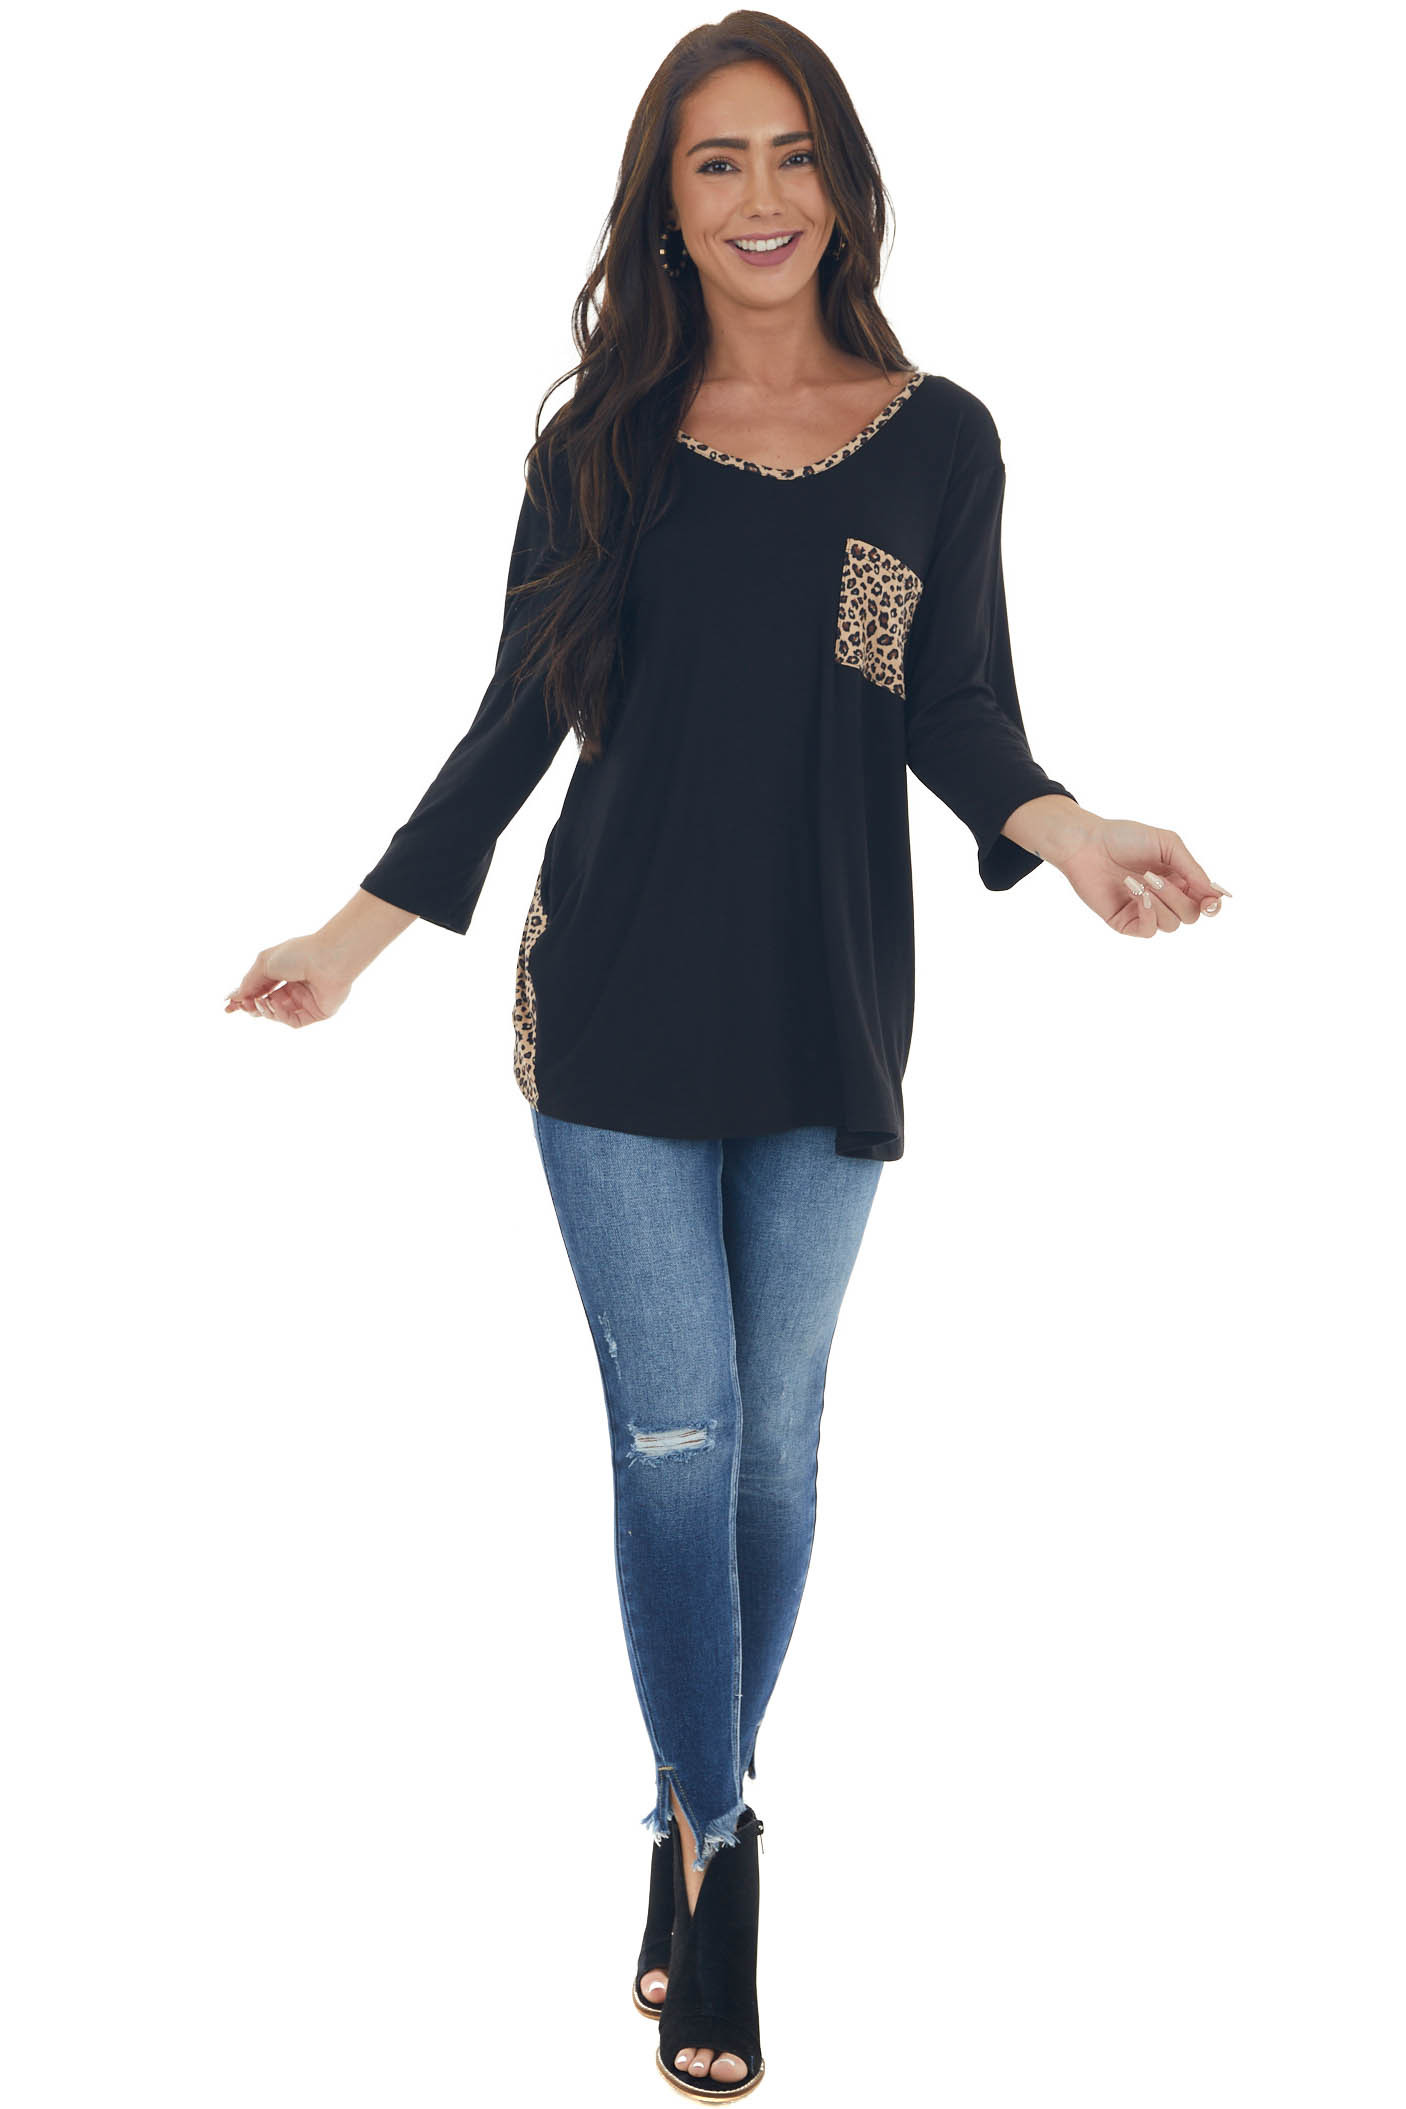 Black and Leopard Overlaying Open Back Top